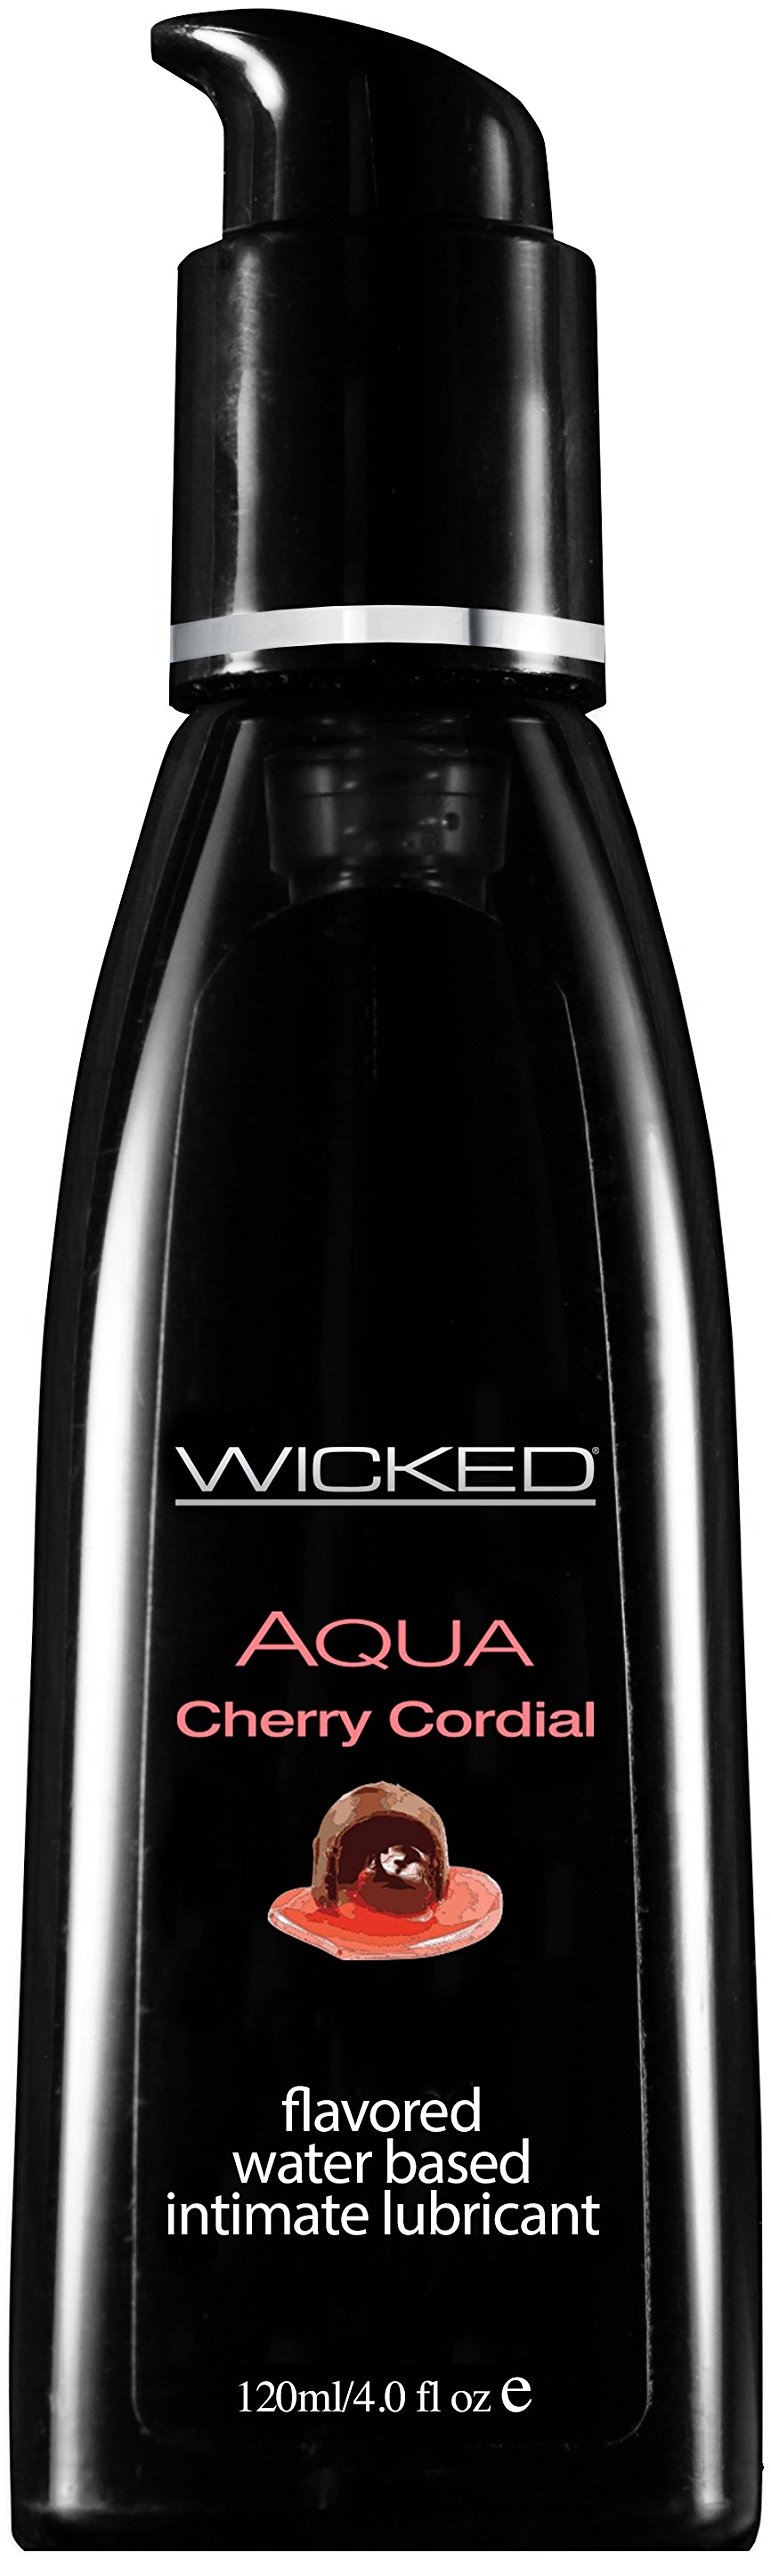 Wicked Lubes Sensual Care Aqua Lubricant, Cherry Cordial, 4 Fluid Ounce